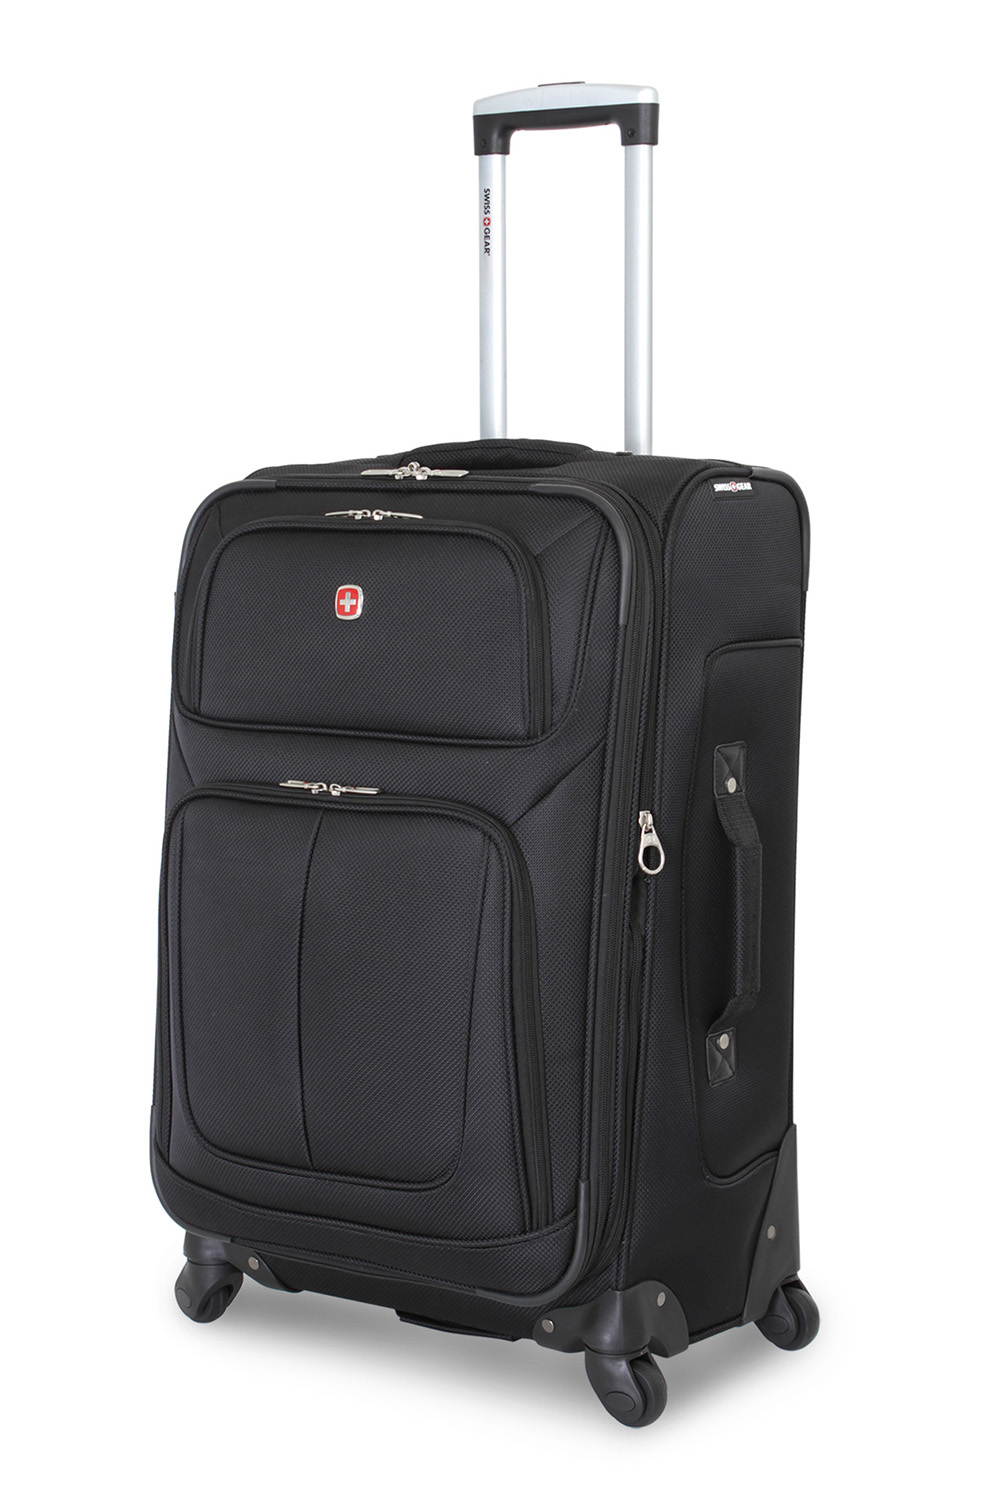 SWISSGEAR 6283 25 Expandable Spinner - Black Luggage